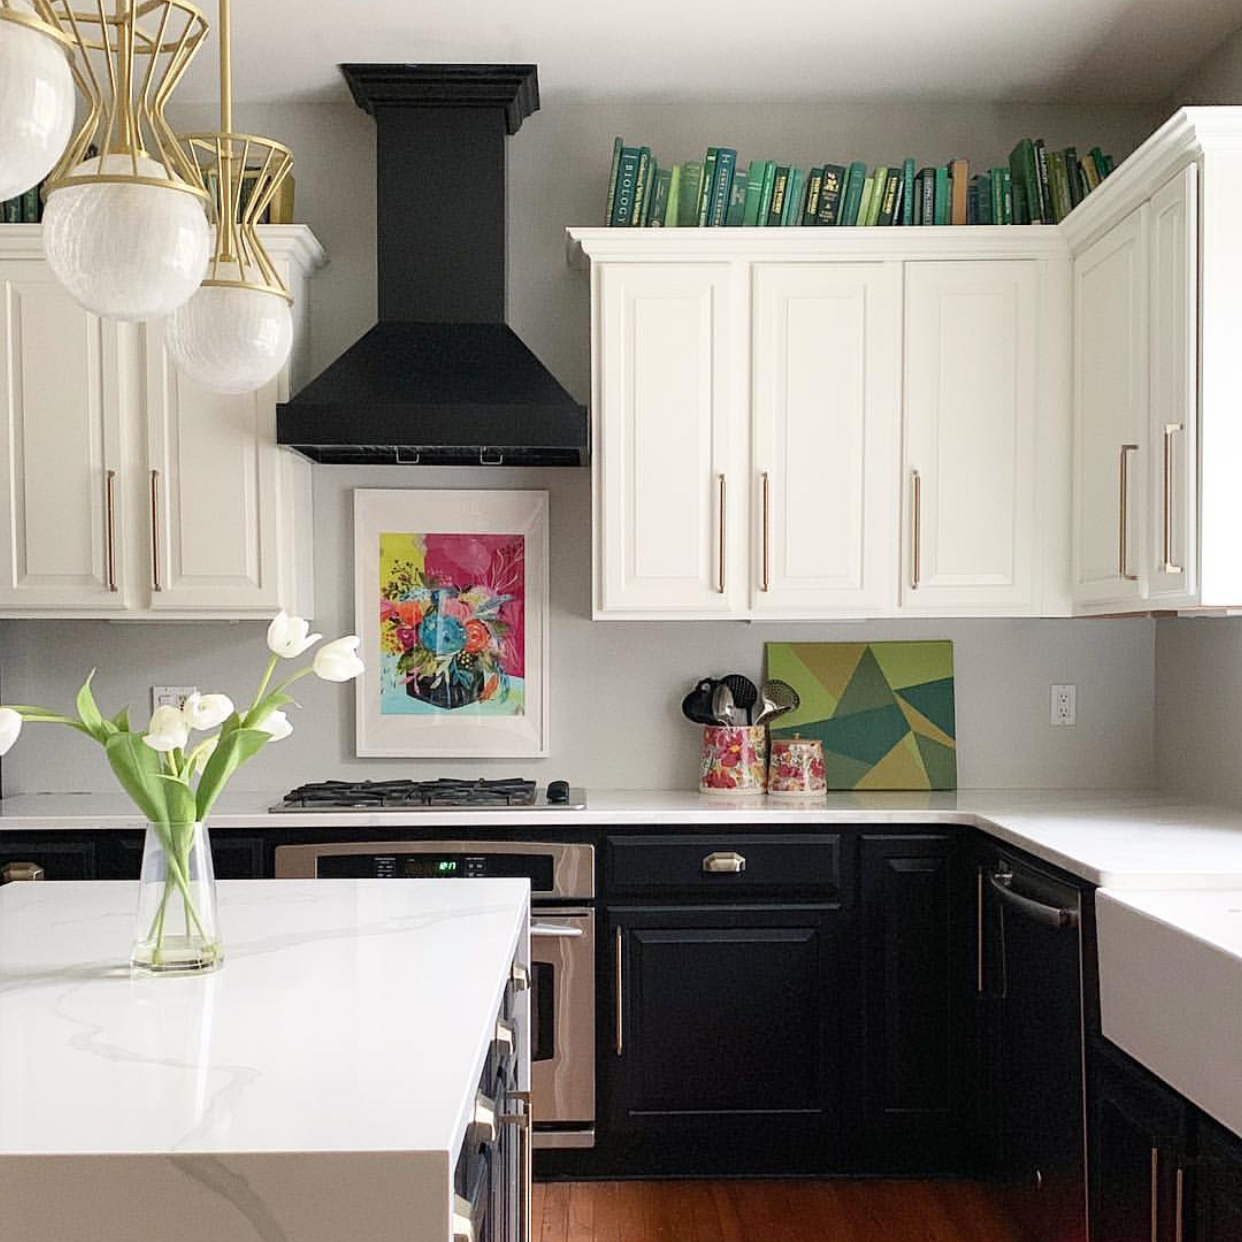 zline-designer-wood-range-hood-KBCC-customer-photo-sq copy.jpg